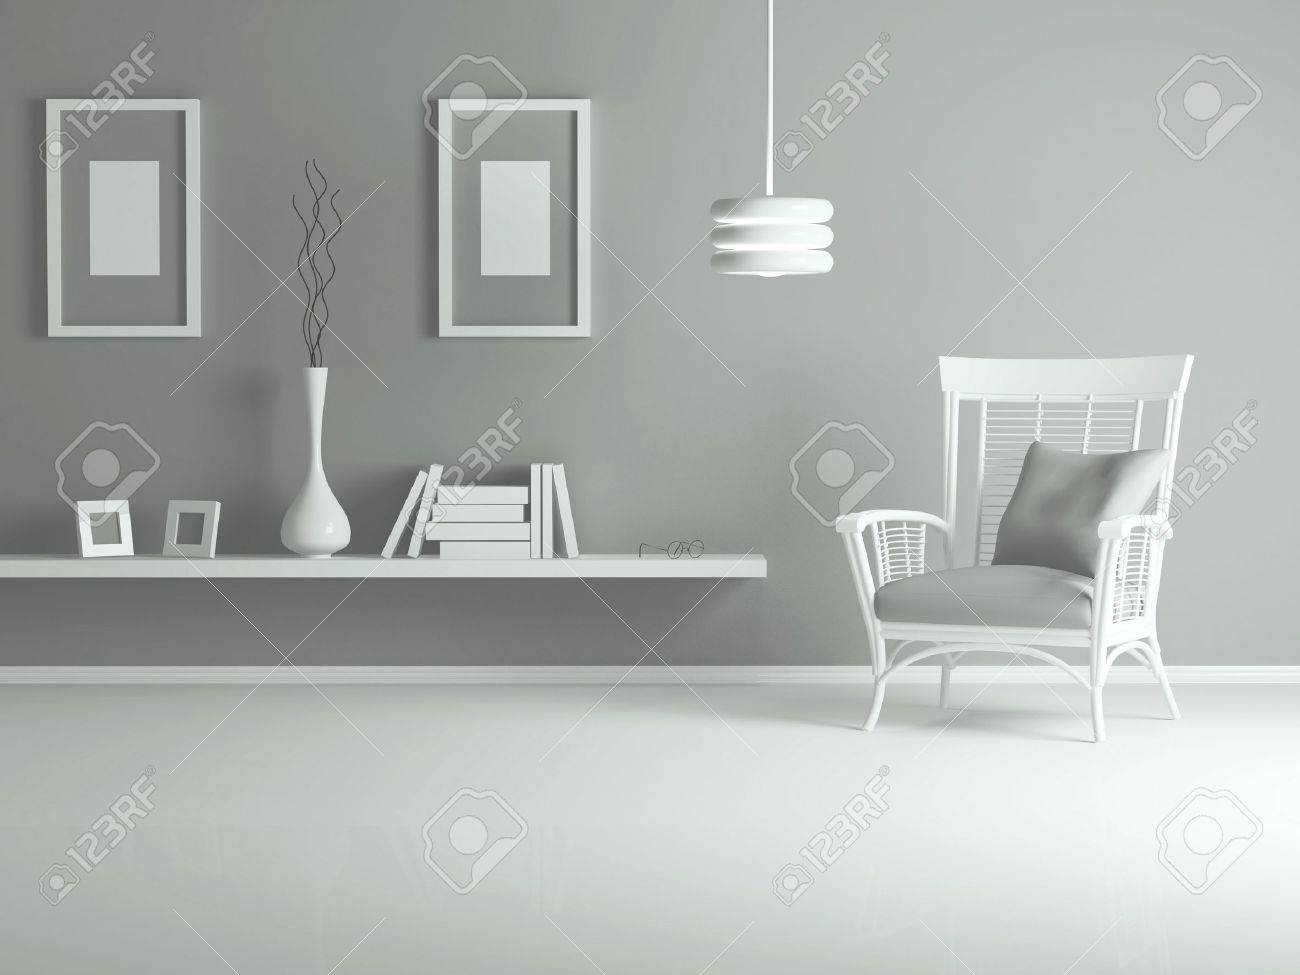 Interior Design White Living Room Interior Design Of Modern Living Room Lounge With White Armchair